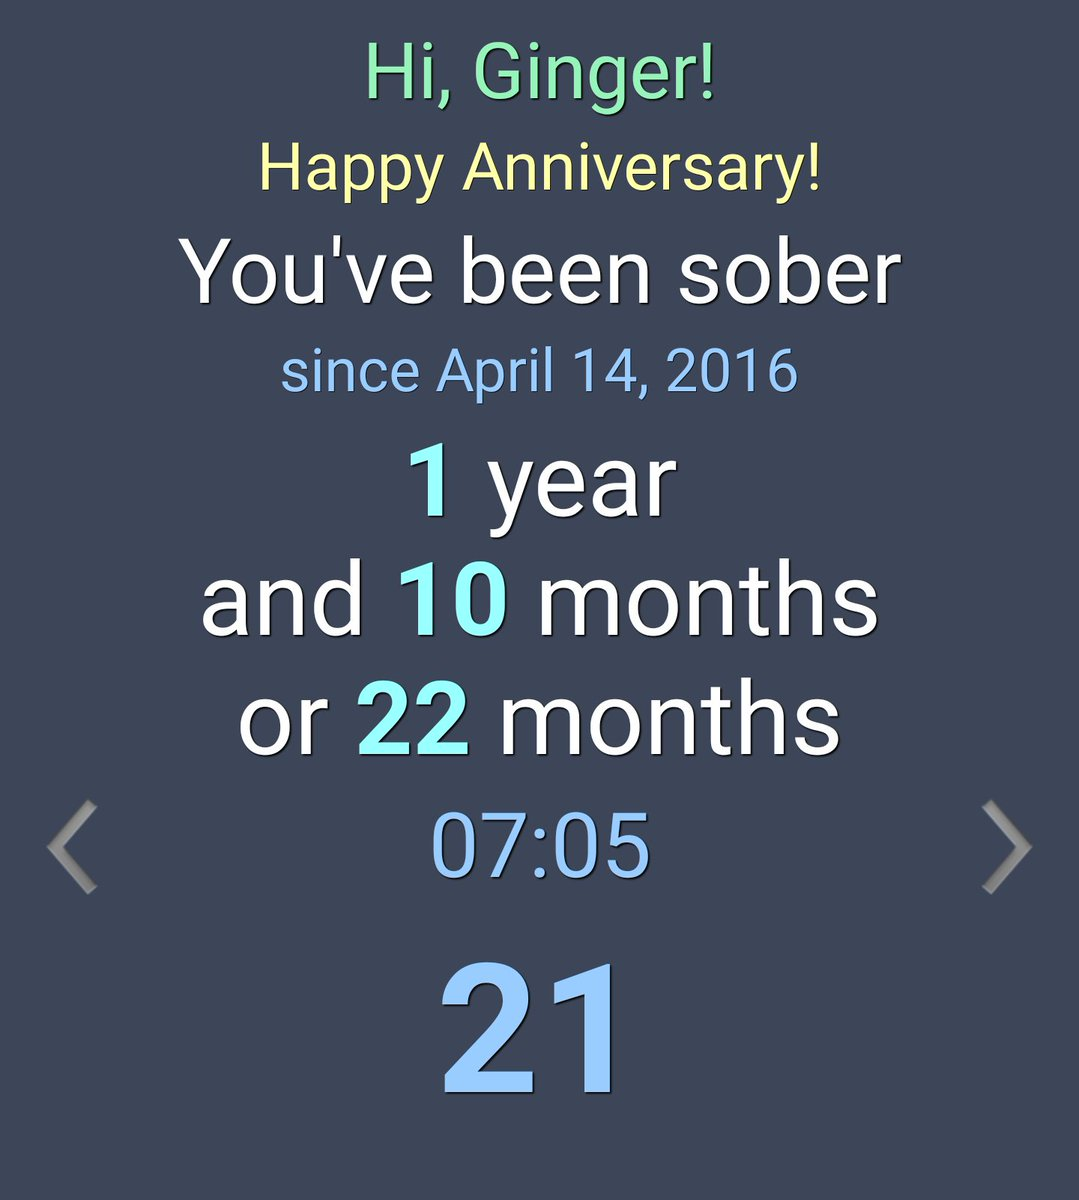 Today is 22 months sober from alcohol for me 😊 KNyEpZ4nJs